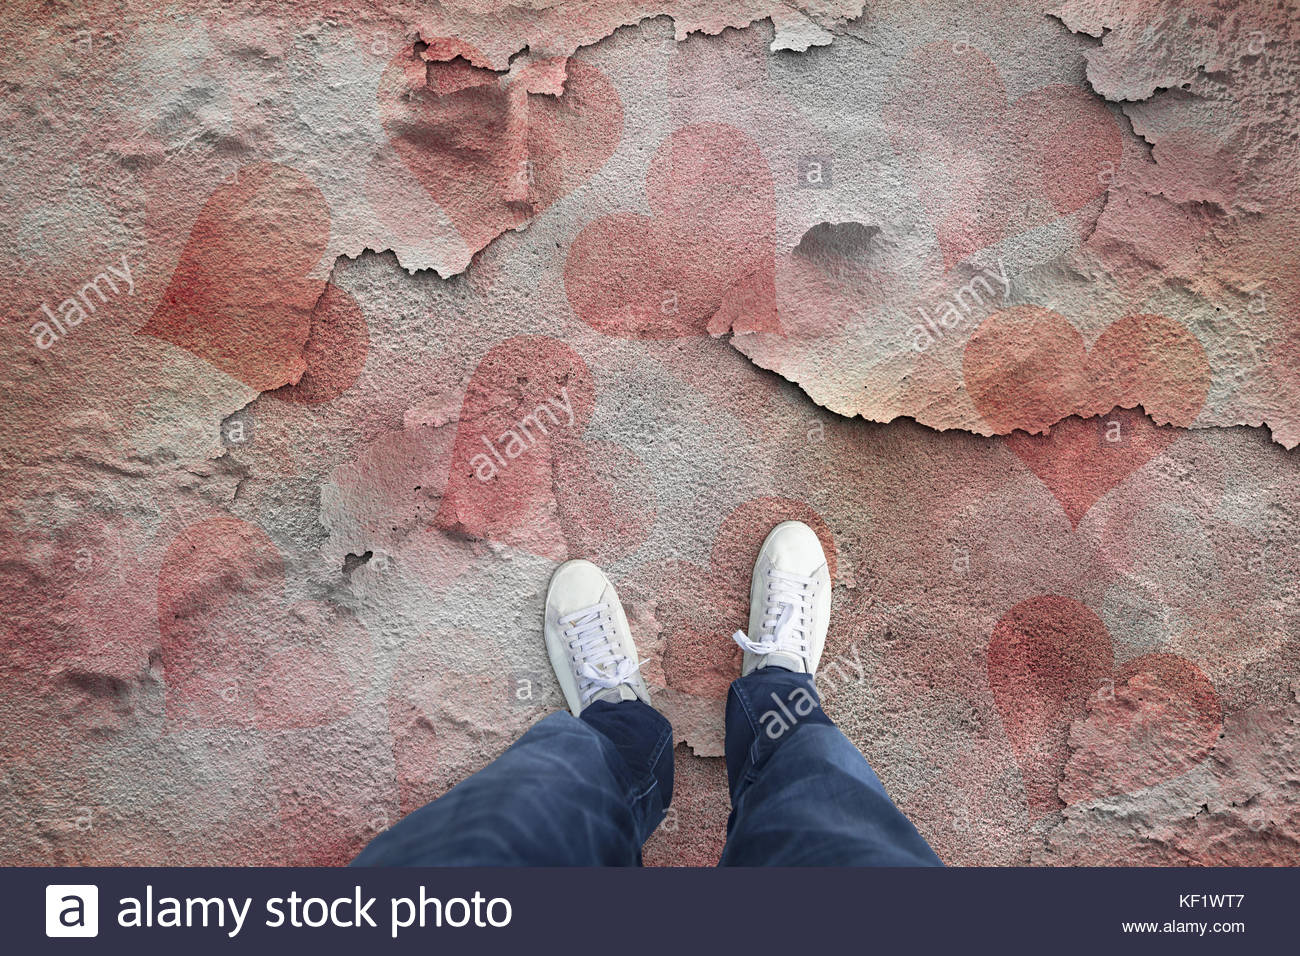 Man standing on the broken and cracked floor with painted purple red colored hearts. Personal perspective used. - Stock Image